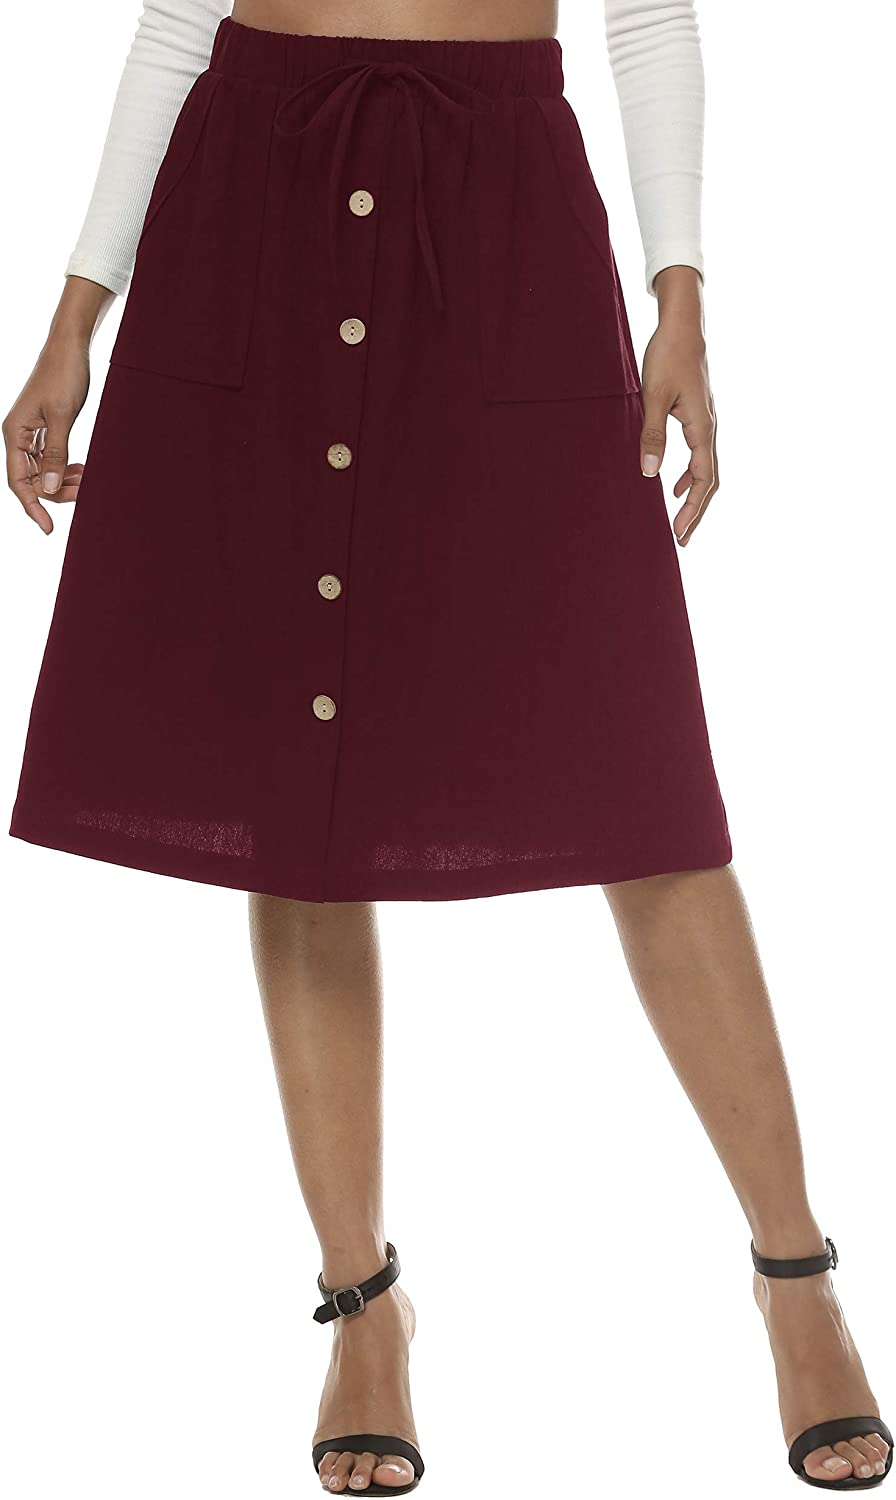 LNX Womens High Waisted Button Front Linen Skirts Drawstring A-Line Midi Skirts with Pockets